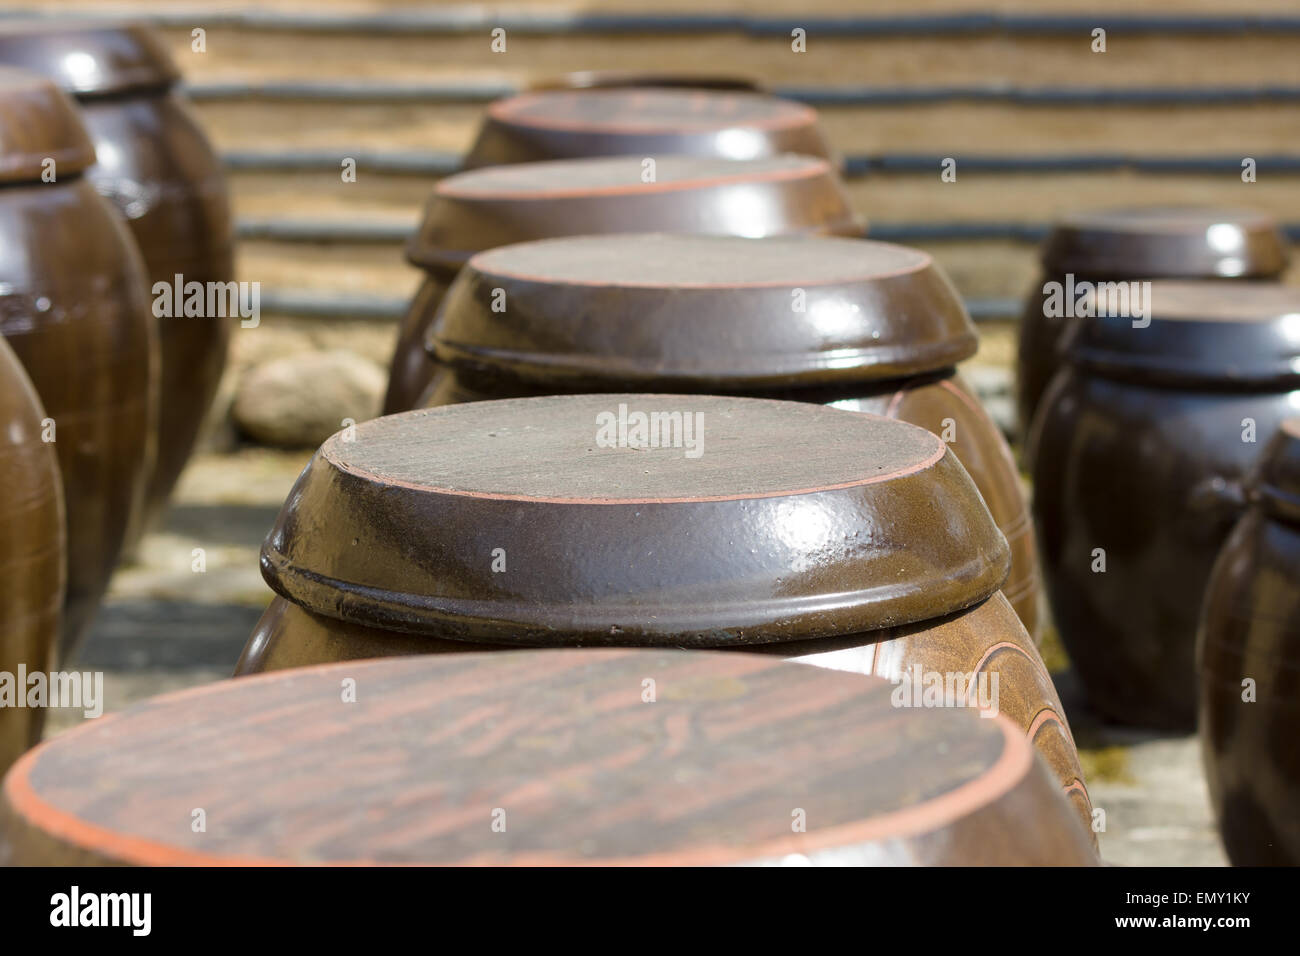 food storage ancient stockfotos food storage ancient bilder alamy. Black Bedroom Furniture Sets. Home Design Ideas